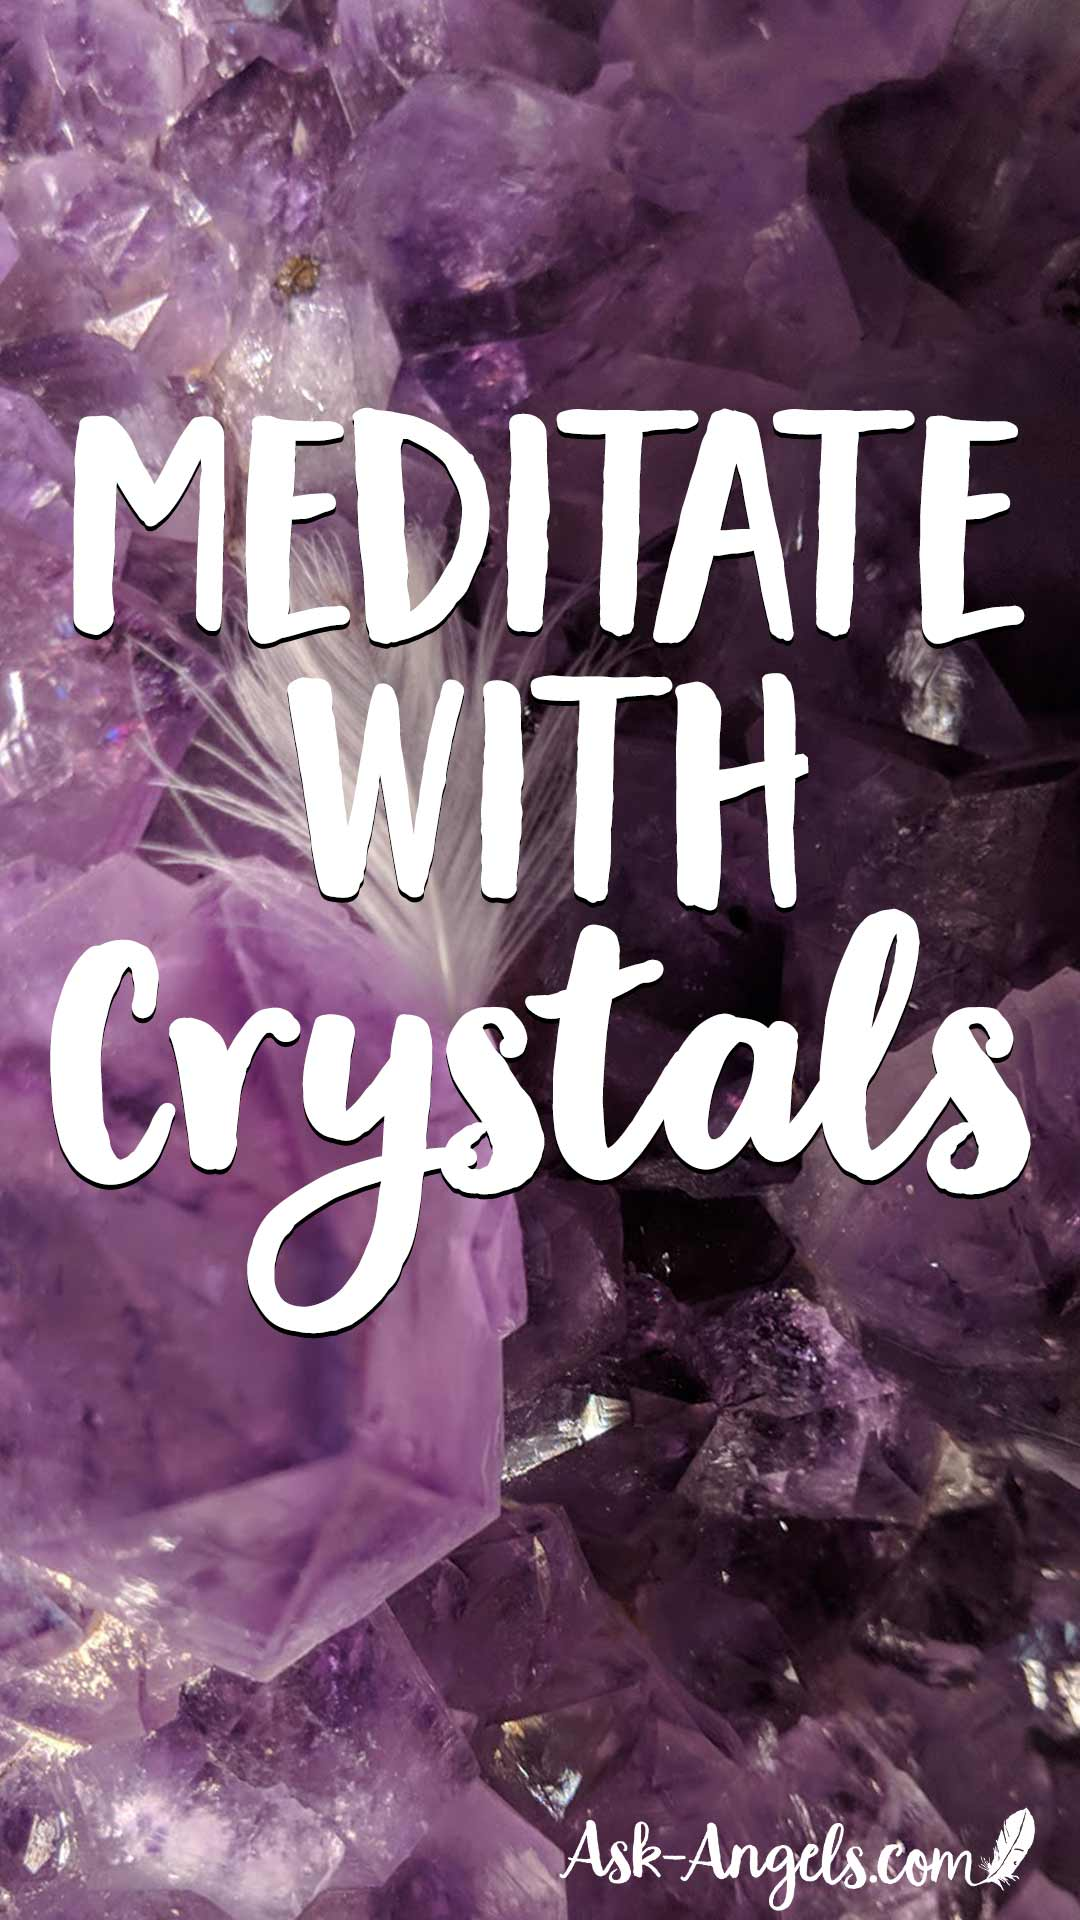 Meditate with Crystals